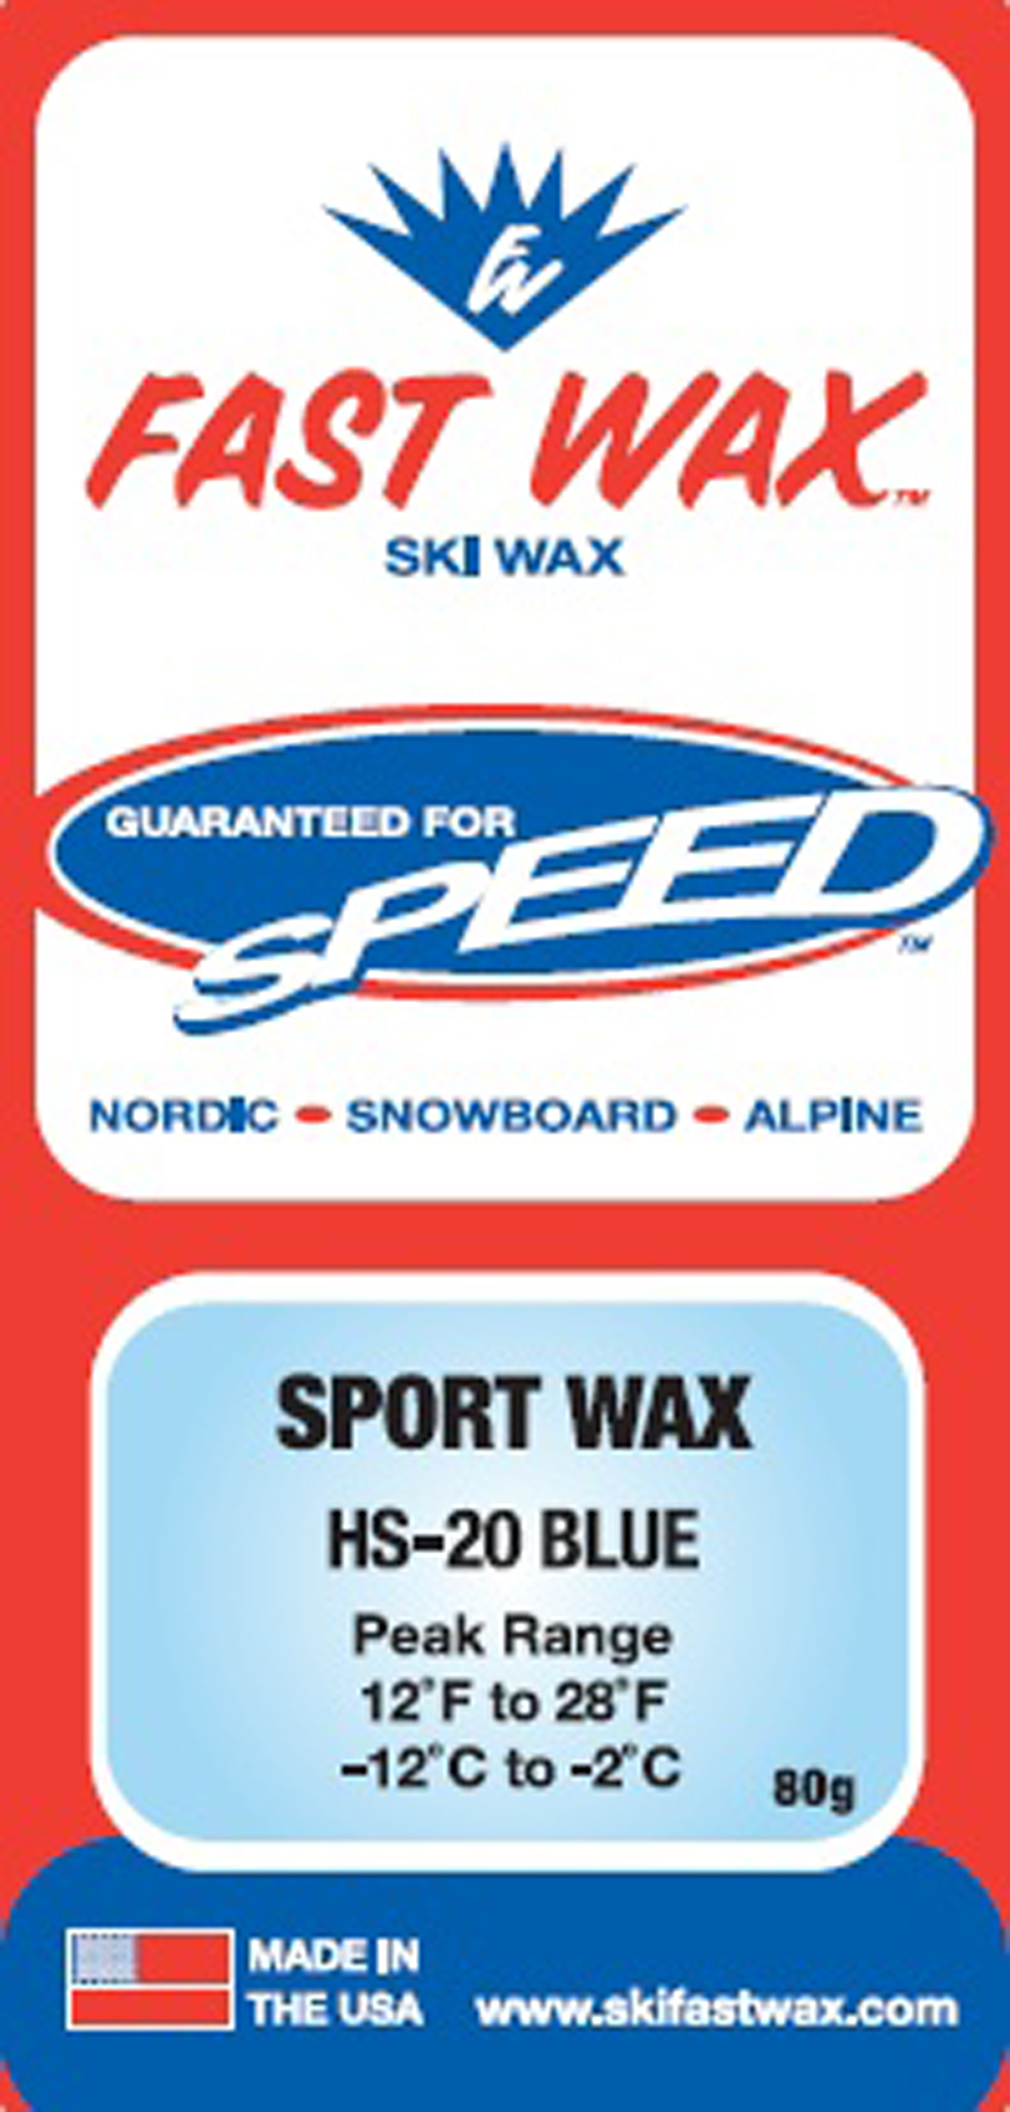 Ski Most common winter skiing wax, works well over a wide temperature range is excellent on powder snow. Key Features of the Fast Wax HS-20 Wax: Great training wax. Used as an under-layer to the harder cold waxes For new snow use a medium or soft flex ski For hard pack or cold snow, a stiff ski works best with a Universal Structure. Fine linear grind or a 0.2 mm to 0.4 mm linear structure, 0.3 mm broken Universal Grind - $8.95